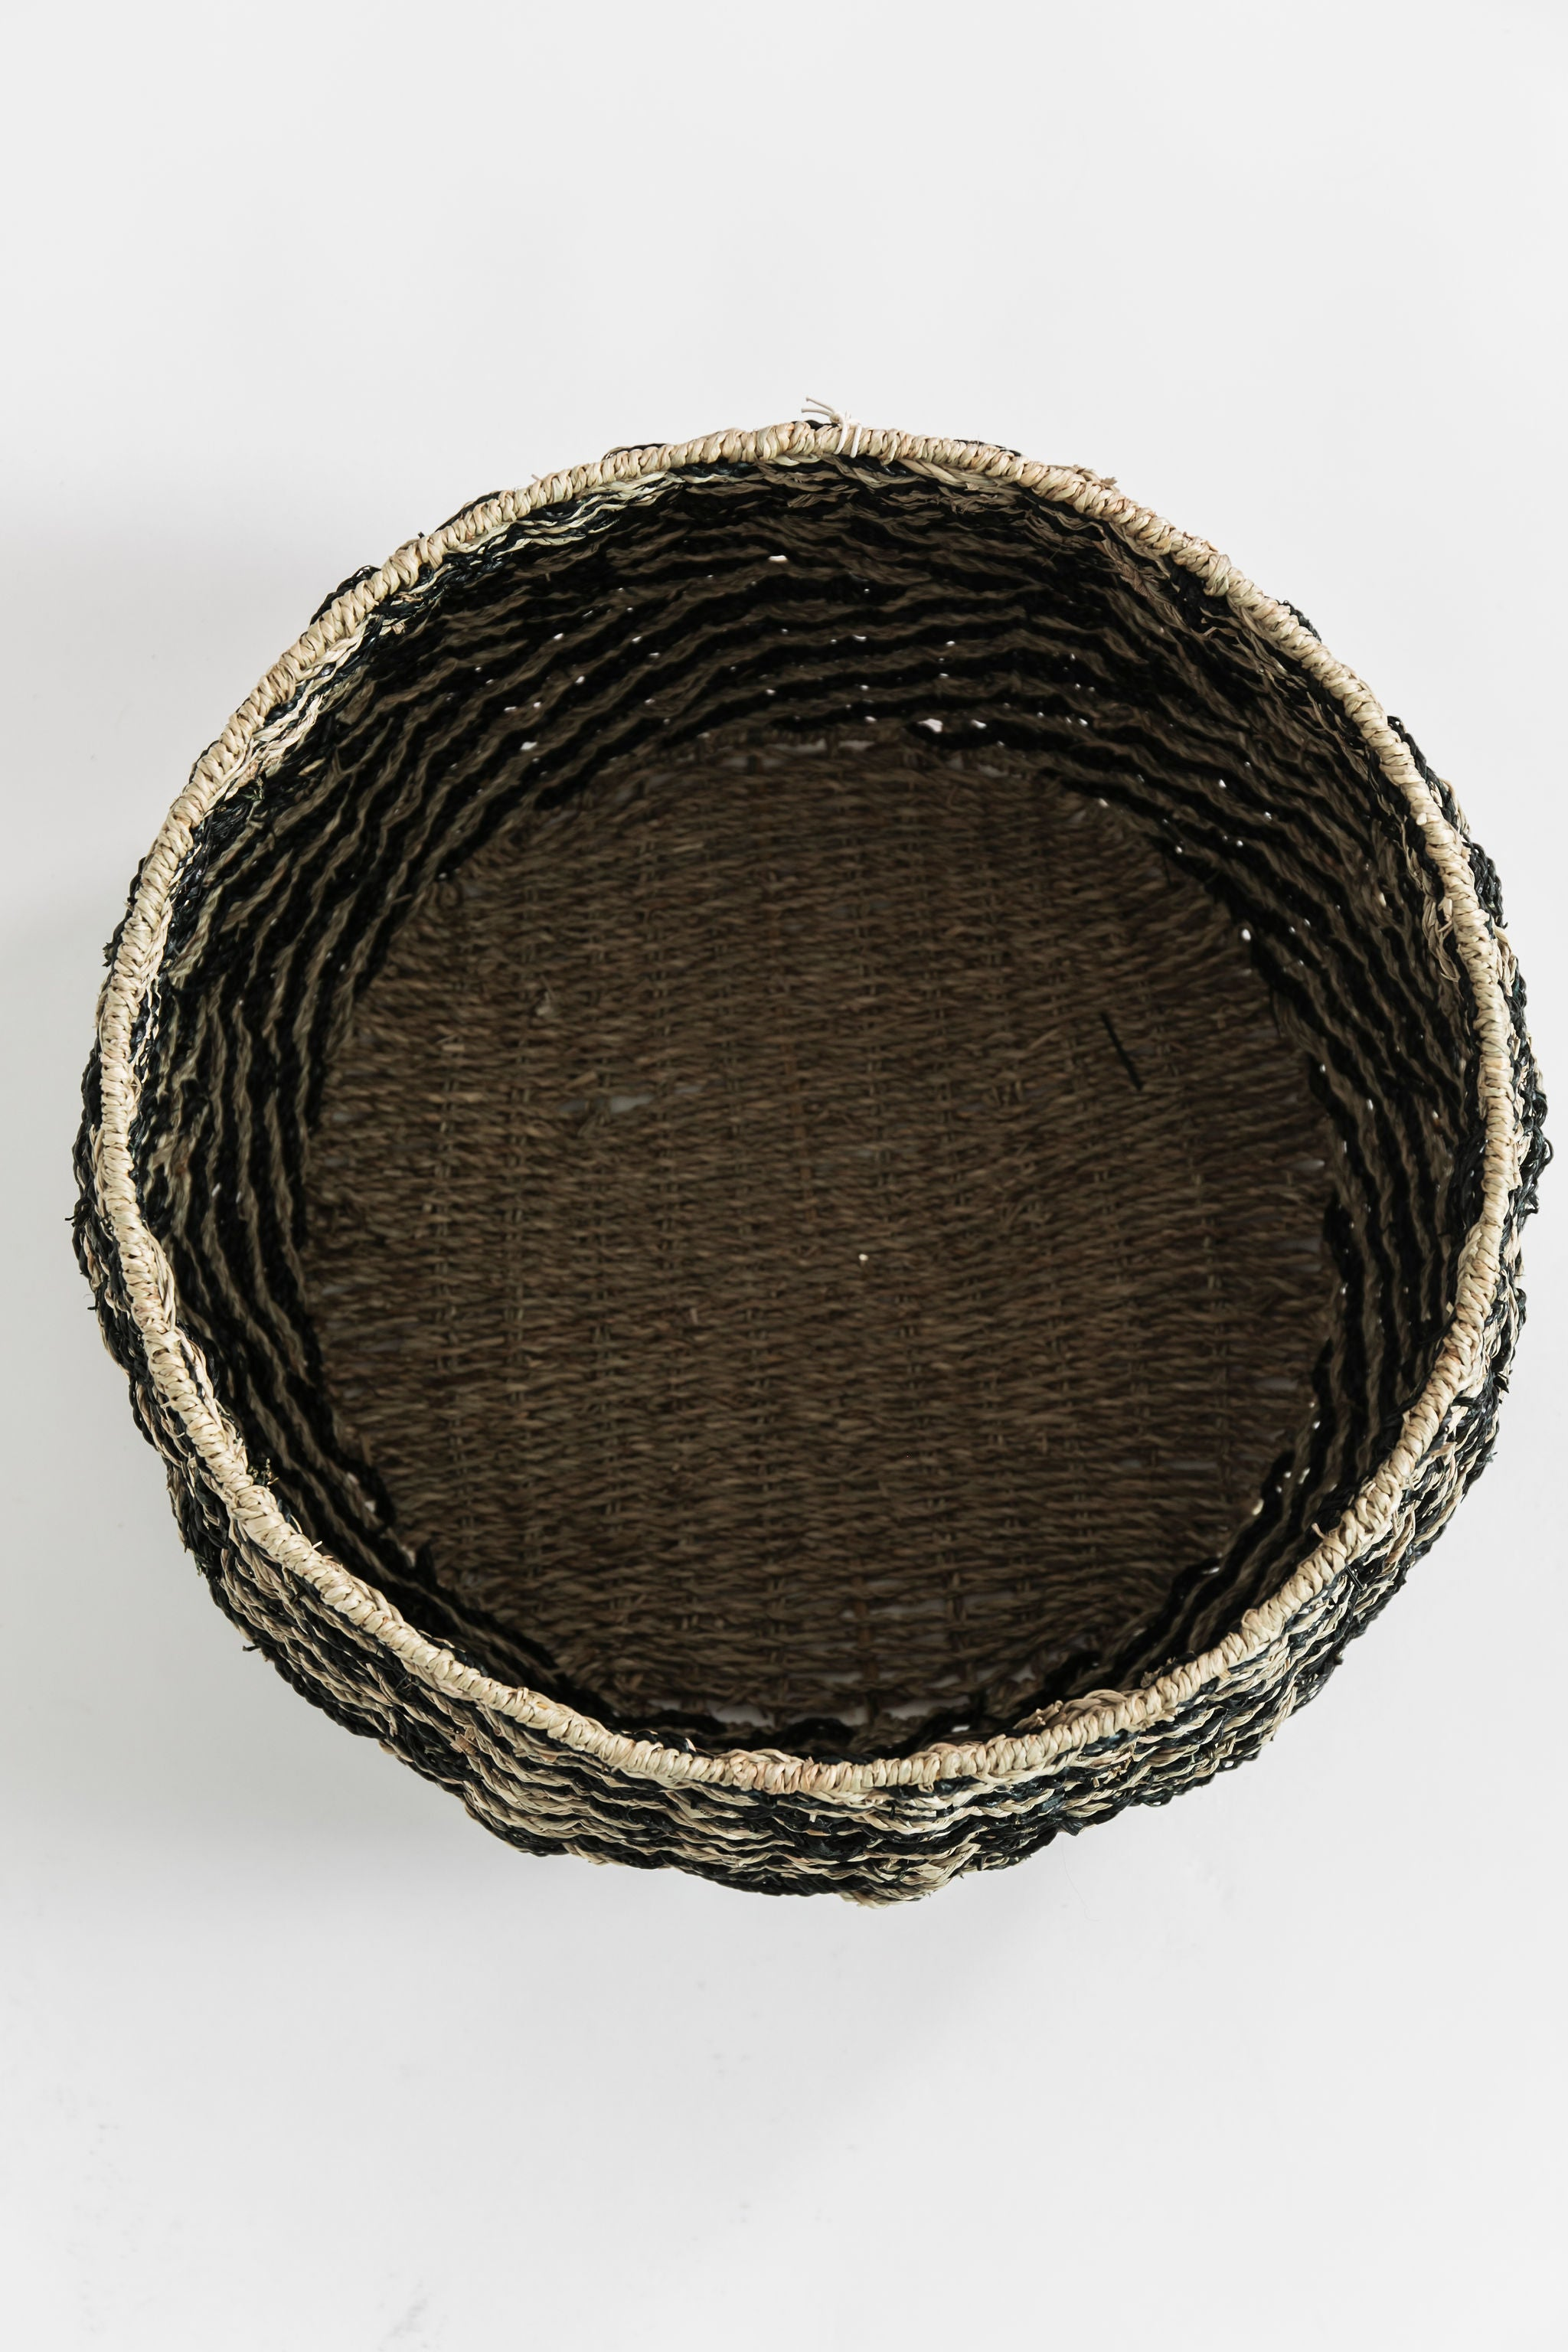 Chevron Woven Seagrass Basket- Small